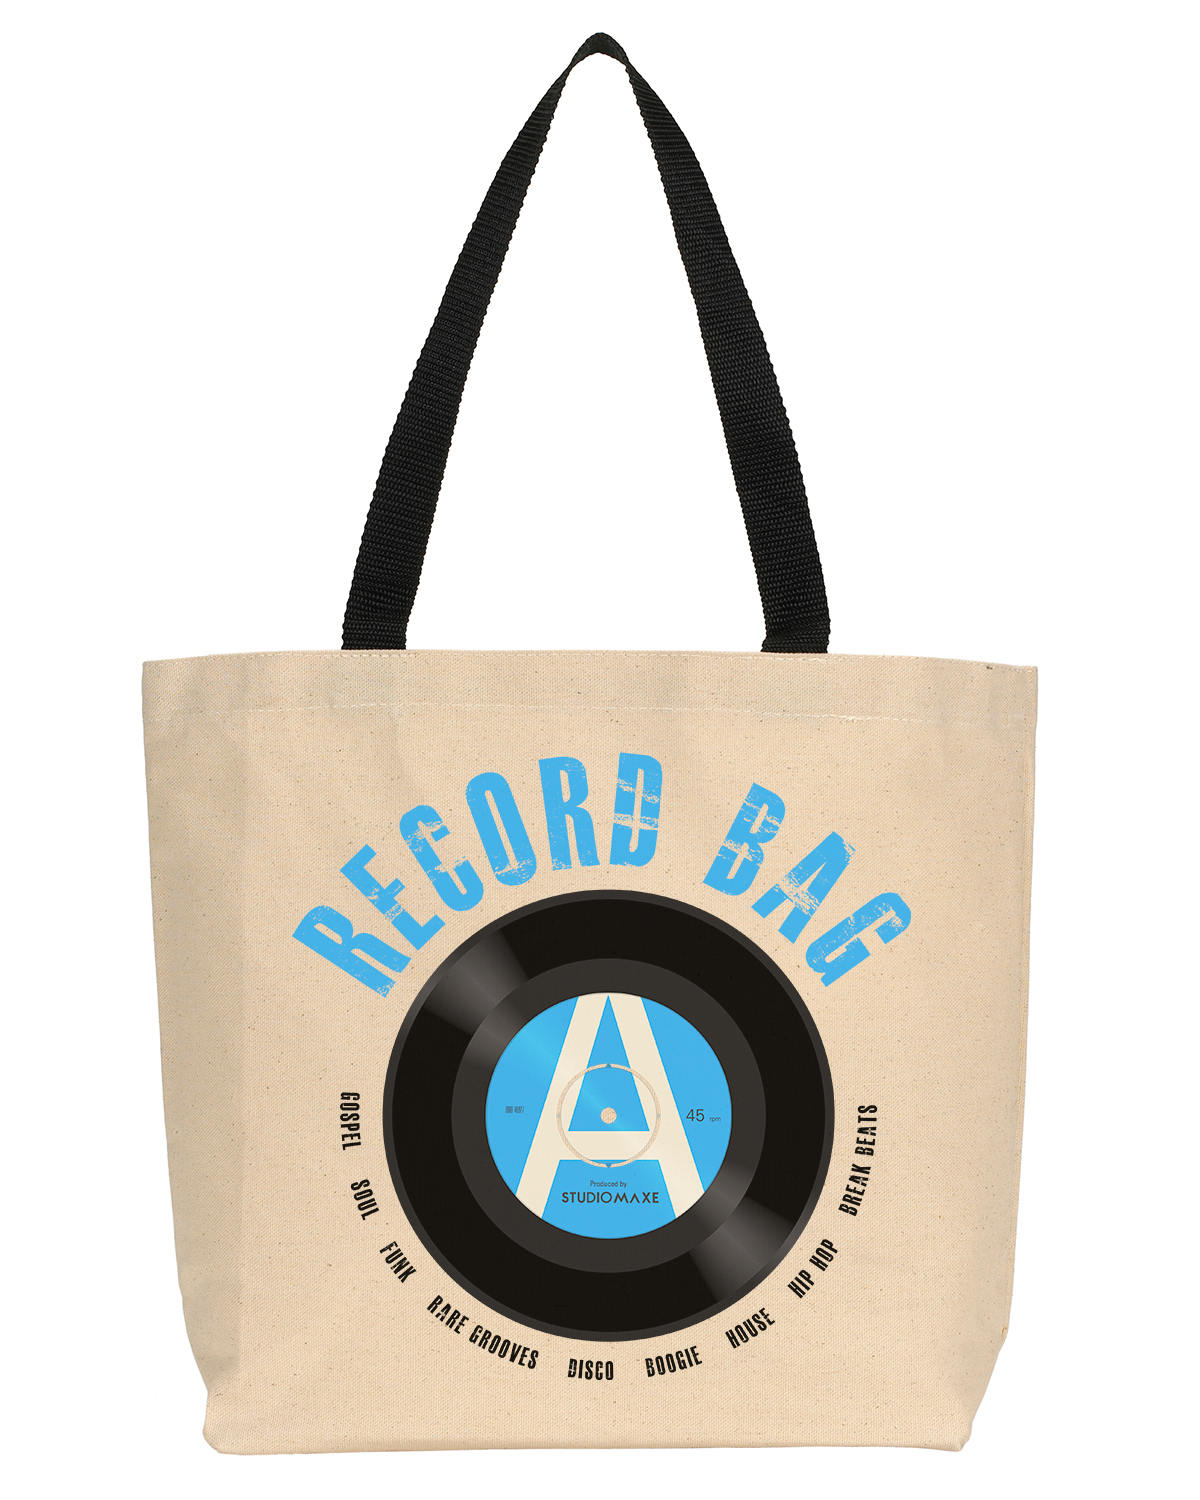 Record Bag Canvas Tote (R&B/ Hip-hop)